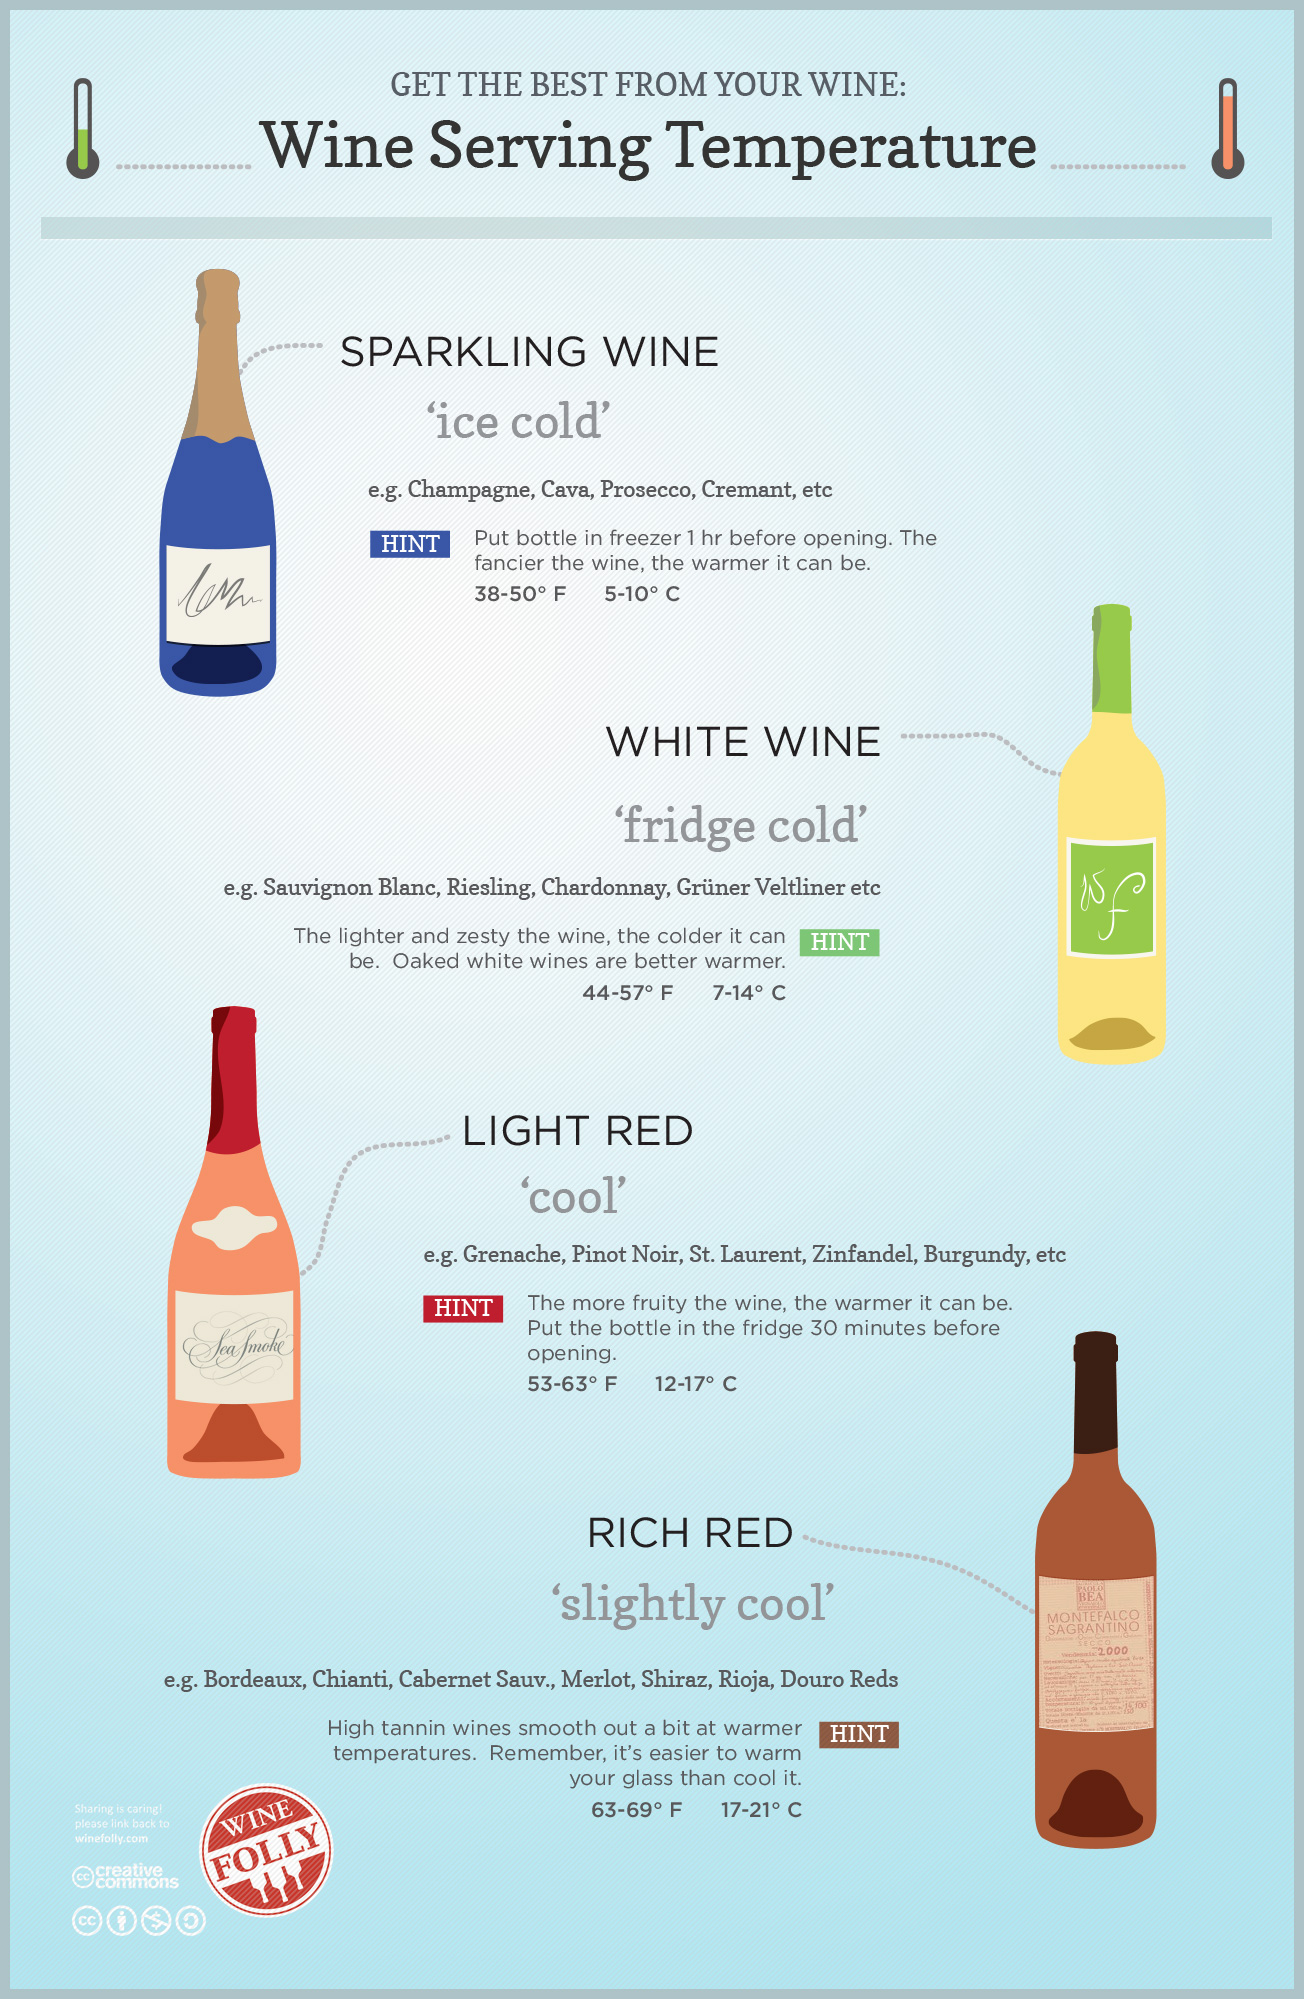 Does Temperature Really Matter? Wine Serving Survival Guide